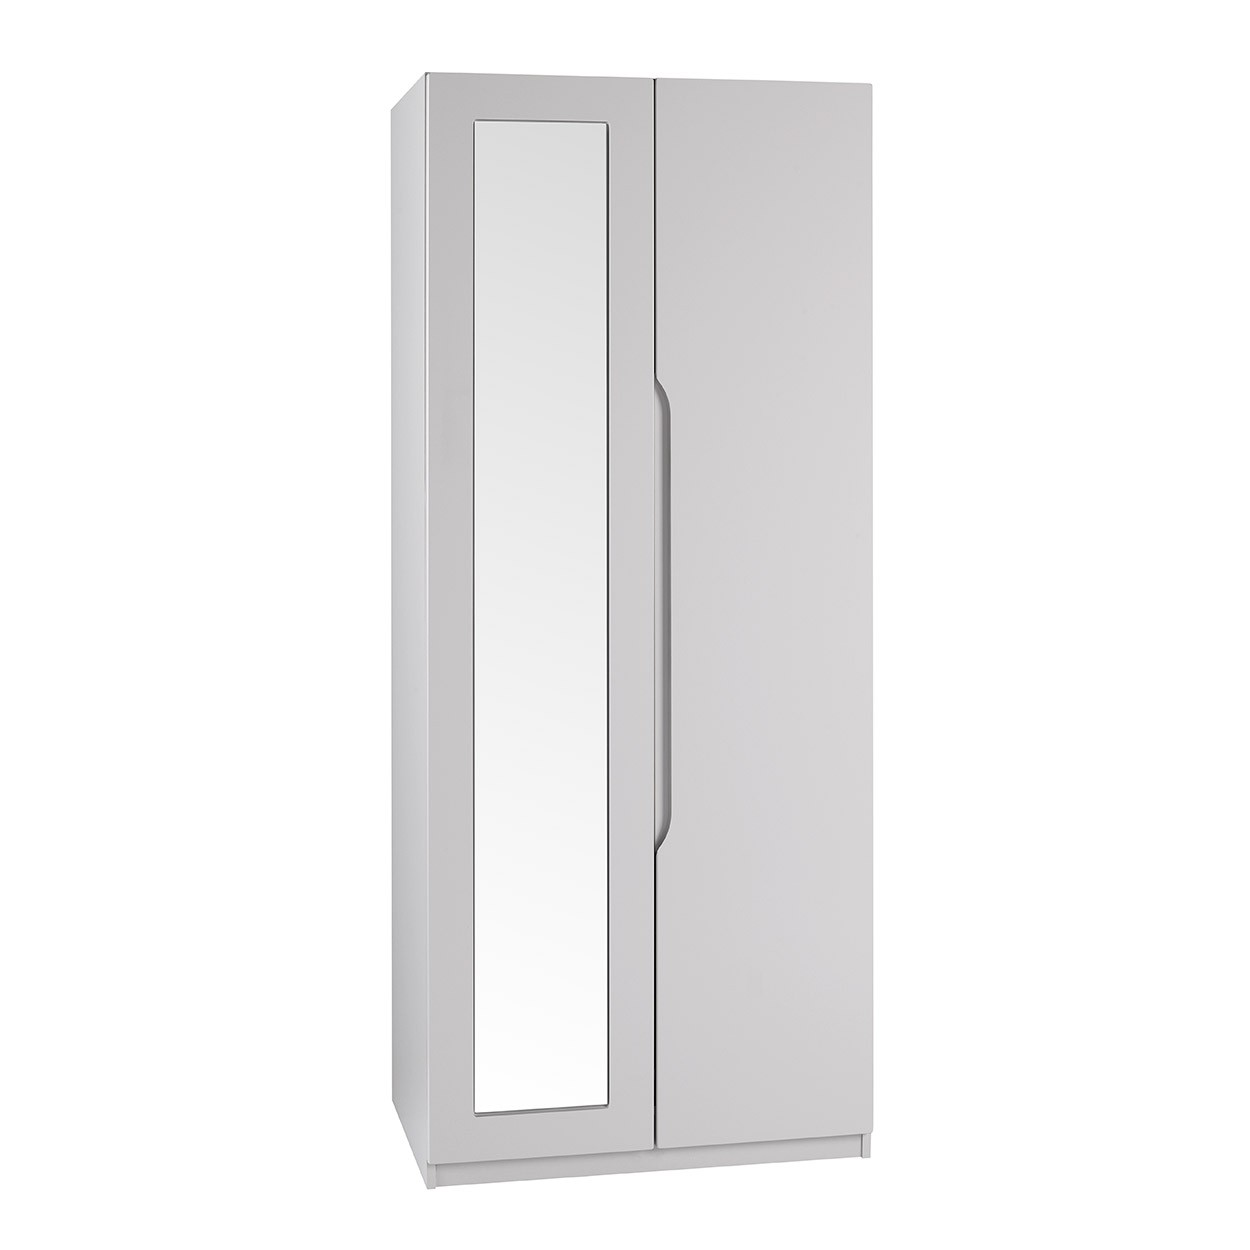 Cashmere Grey High Gloss Extra Tall 2 Door Wardrobe